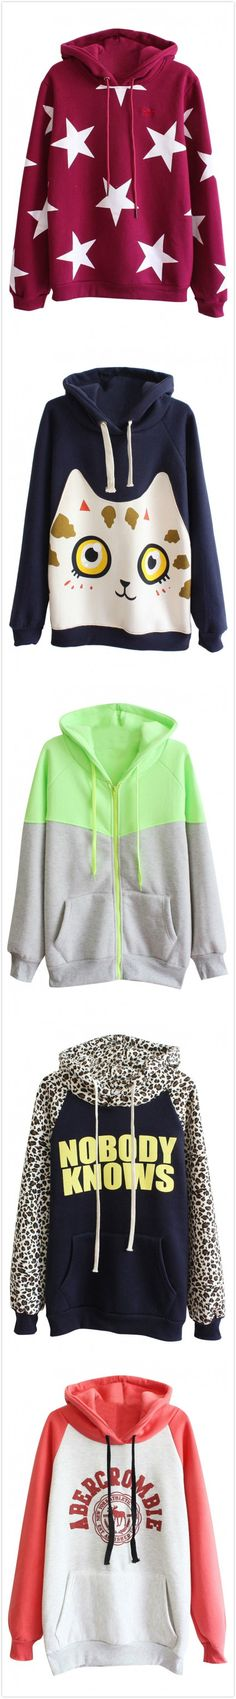 This graphic hoodies are all made from comfortable fabric. It is perfect for school, work, and travels! Find your style now at AZBRO.com!